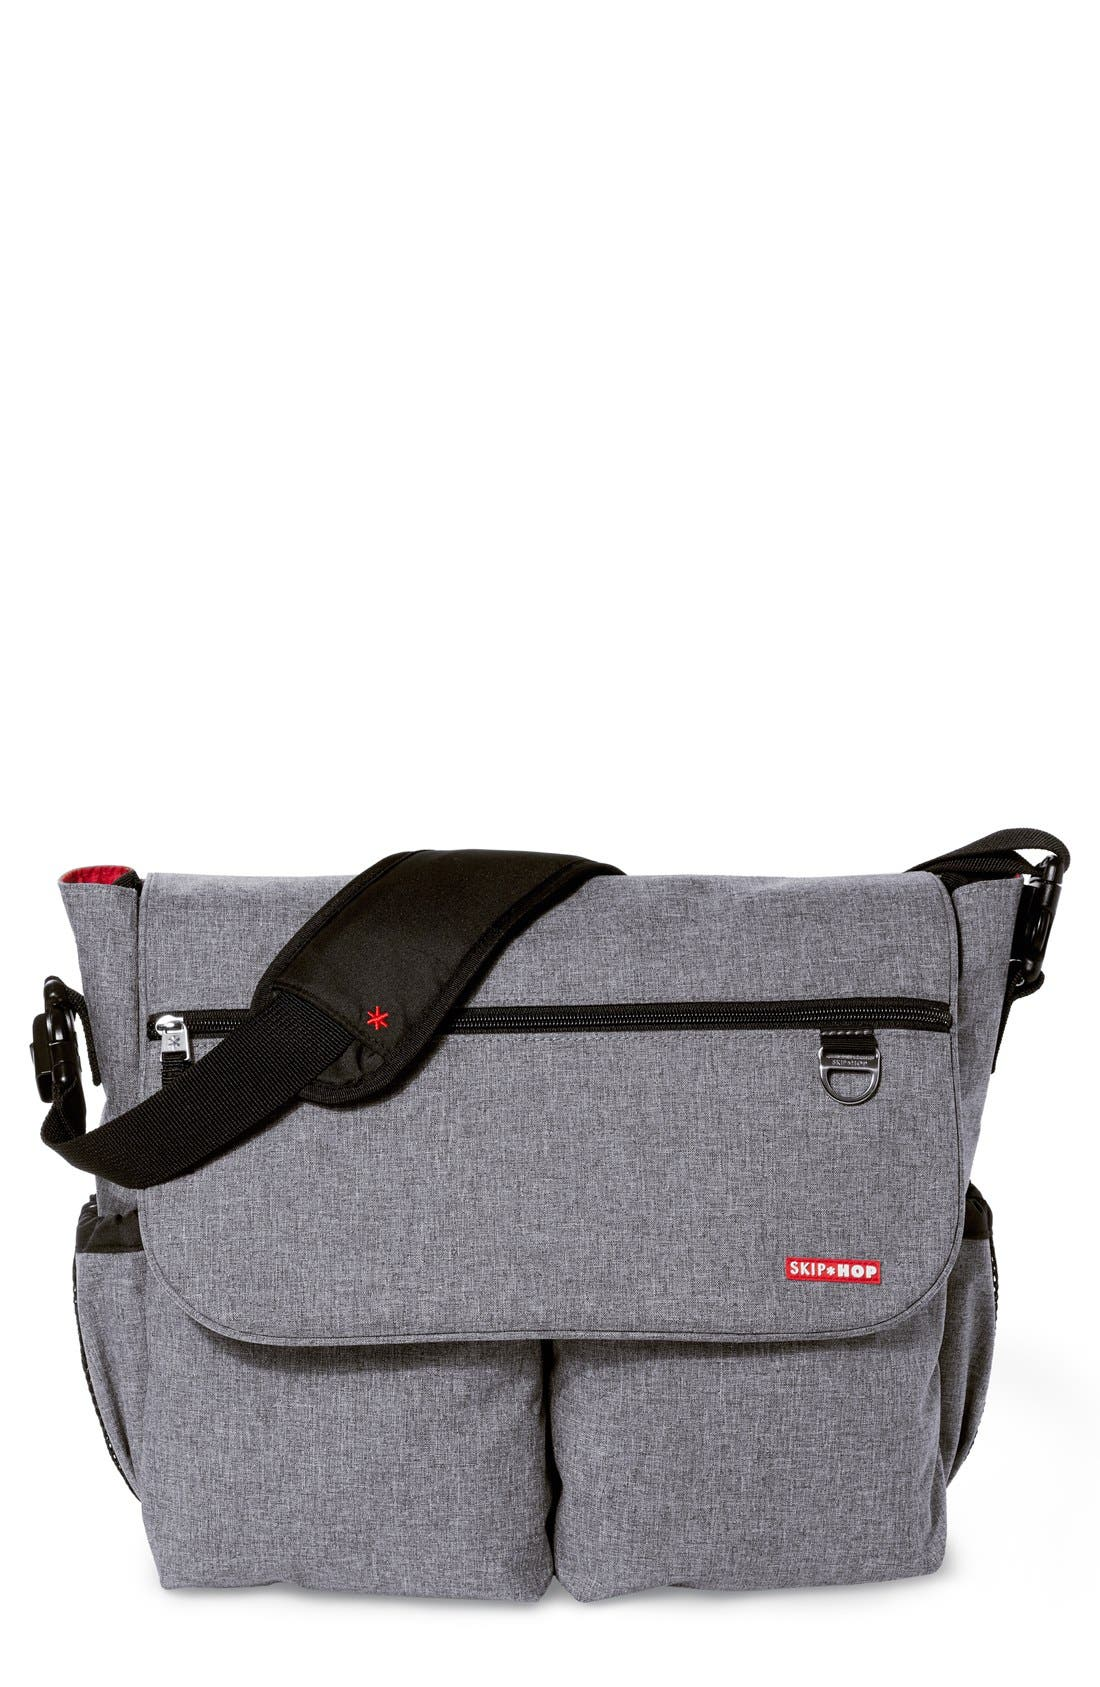 Skip Hop 'Dash Signature' Messenger Diaper Bag